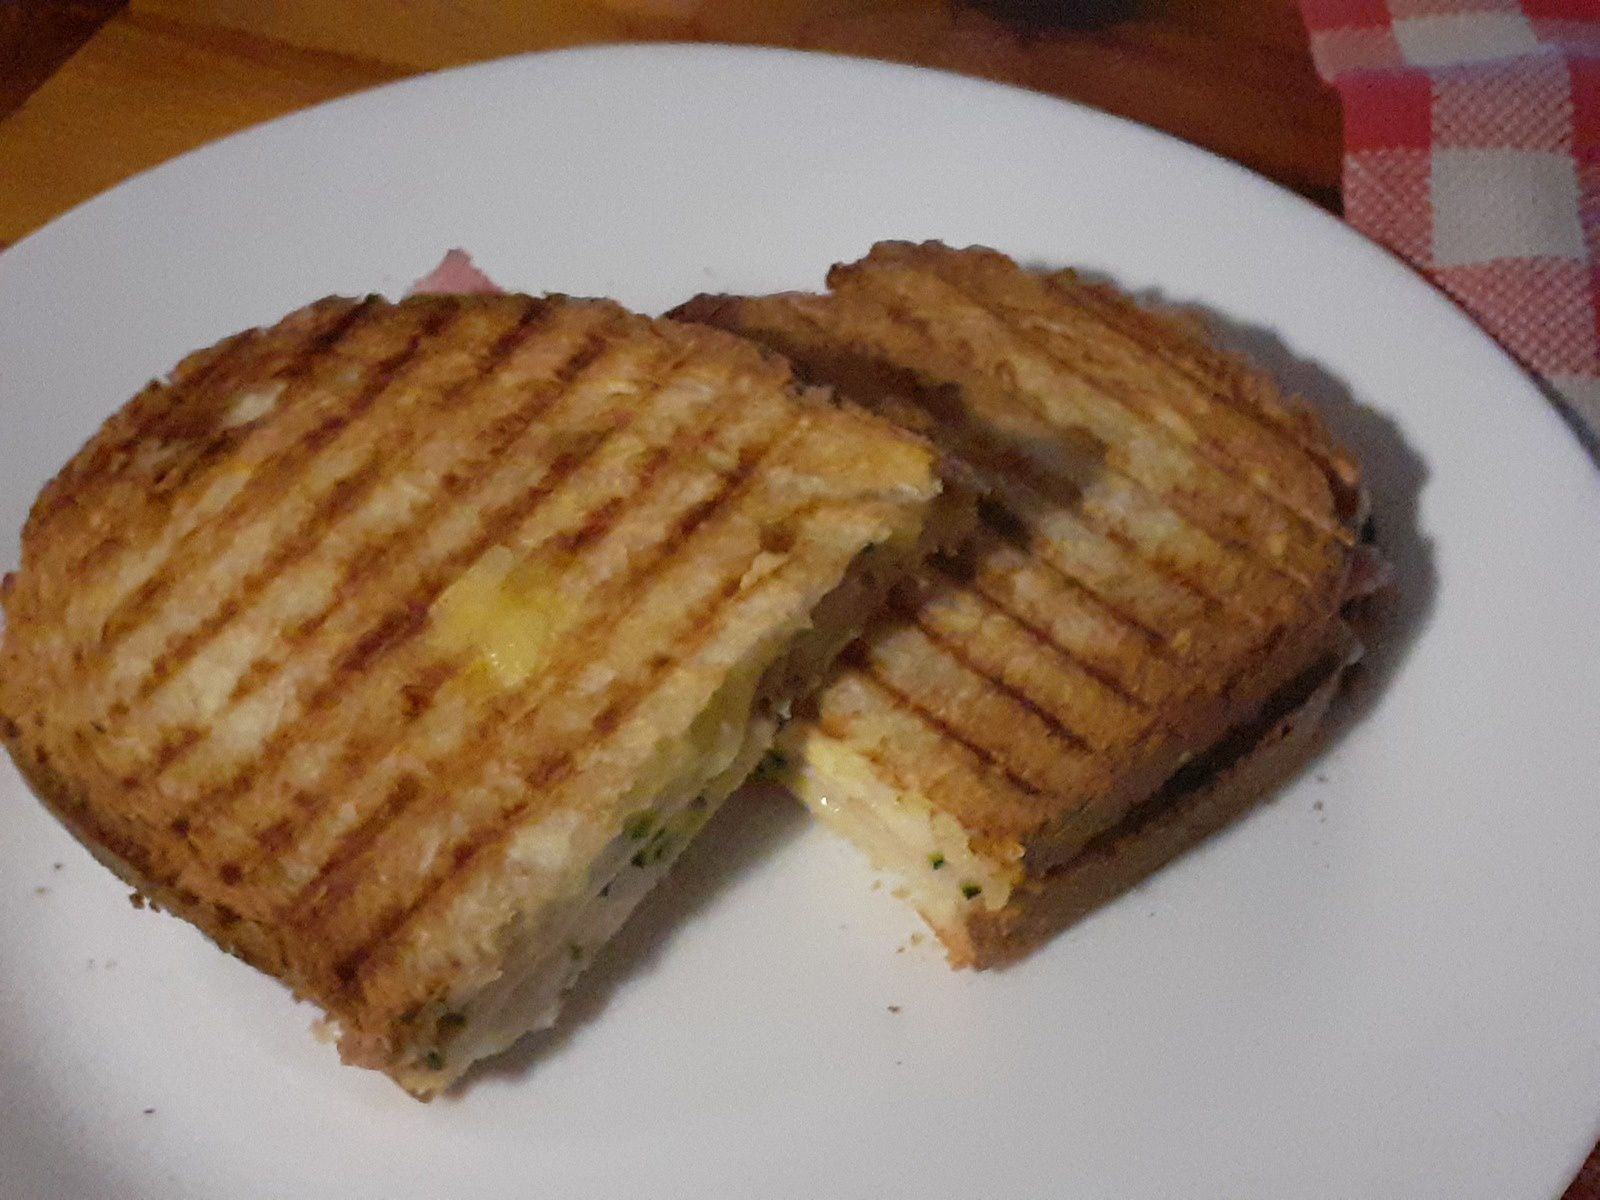 Grilled cheese. Jambon.courgette.3 fromages.